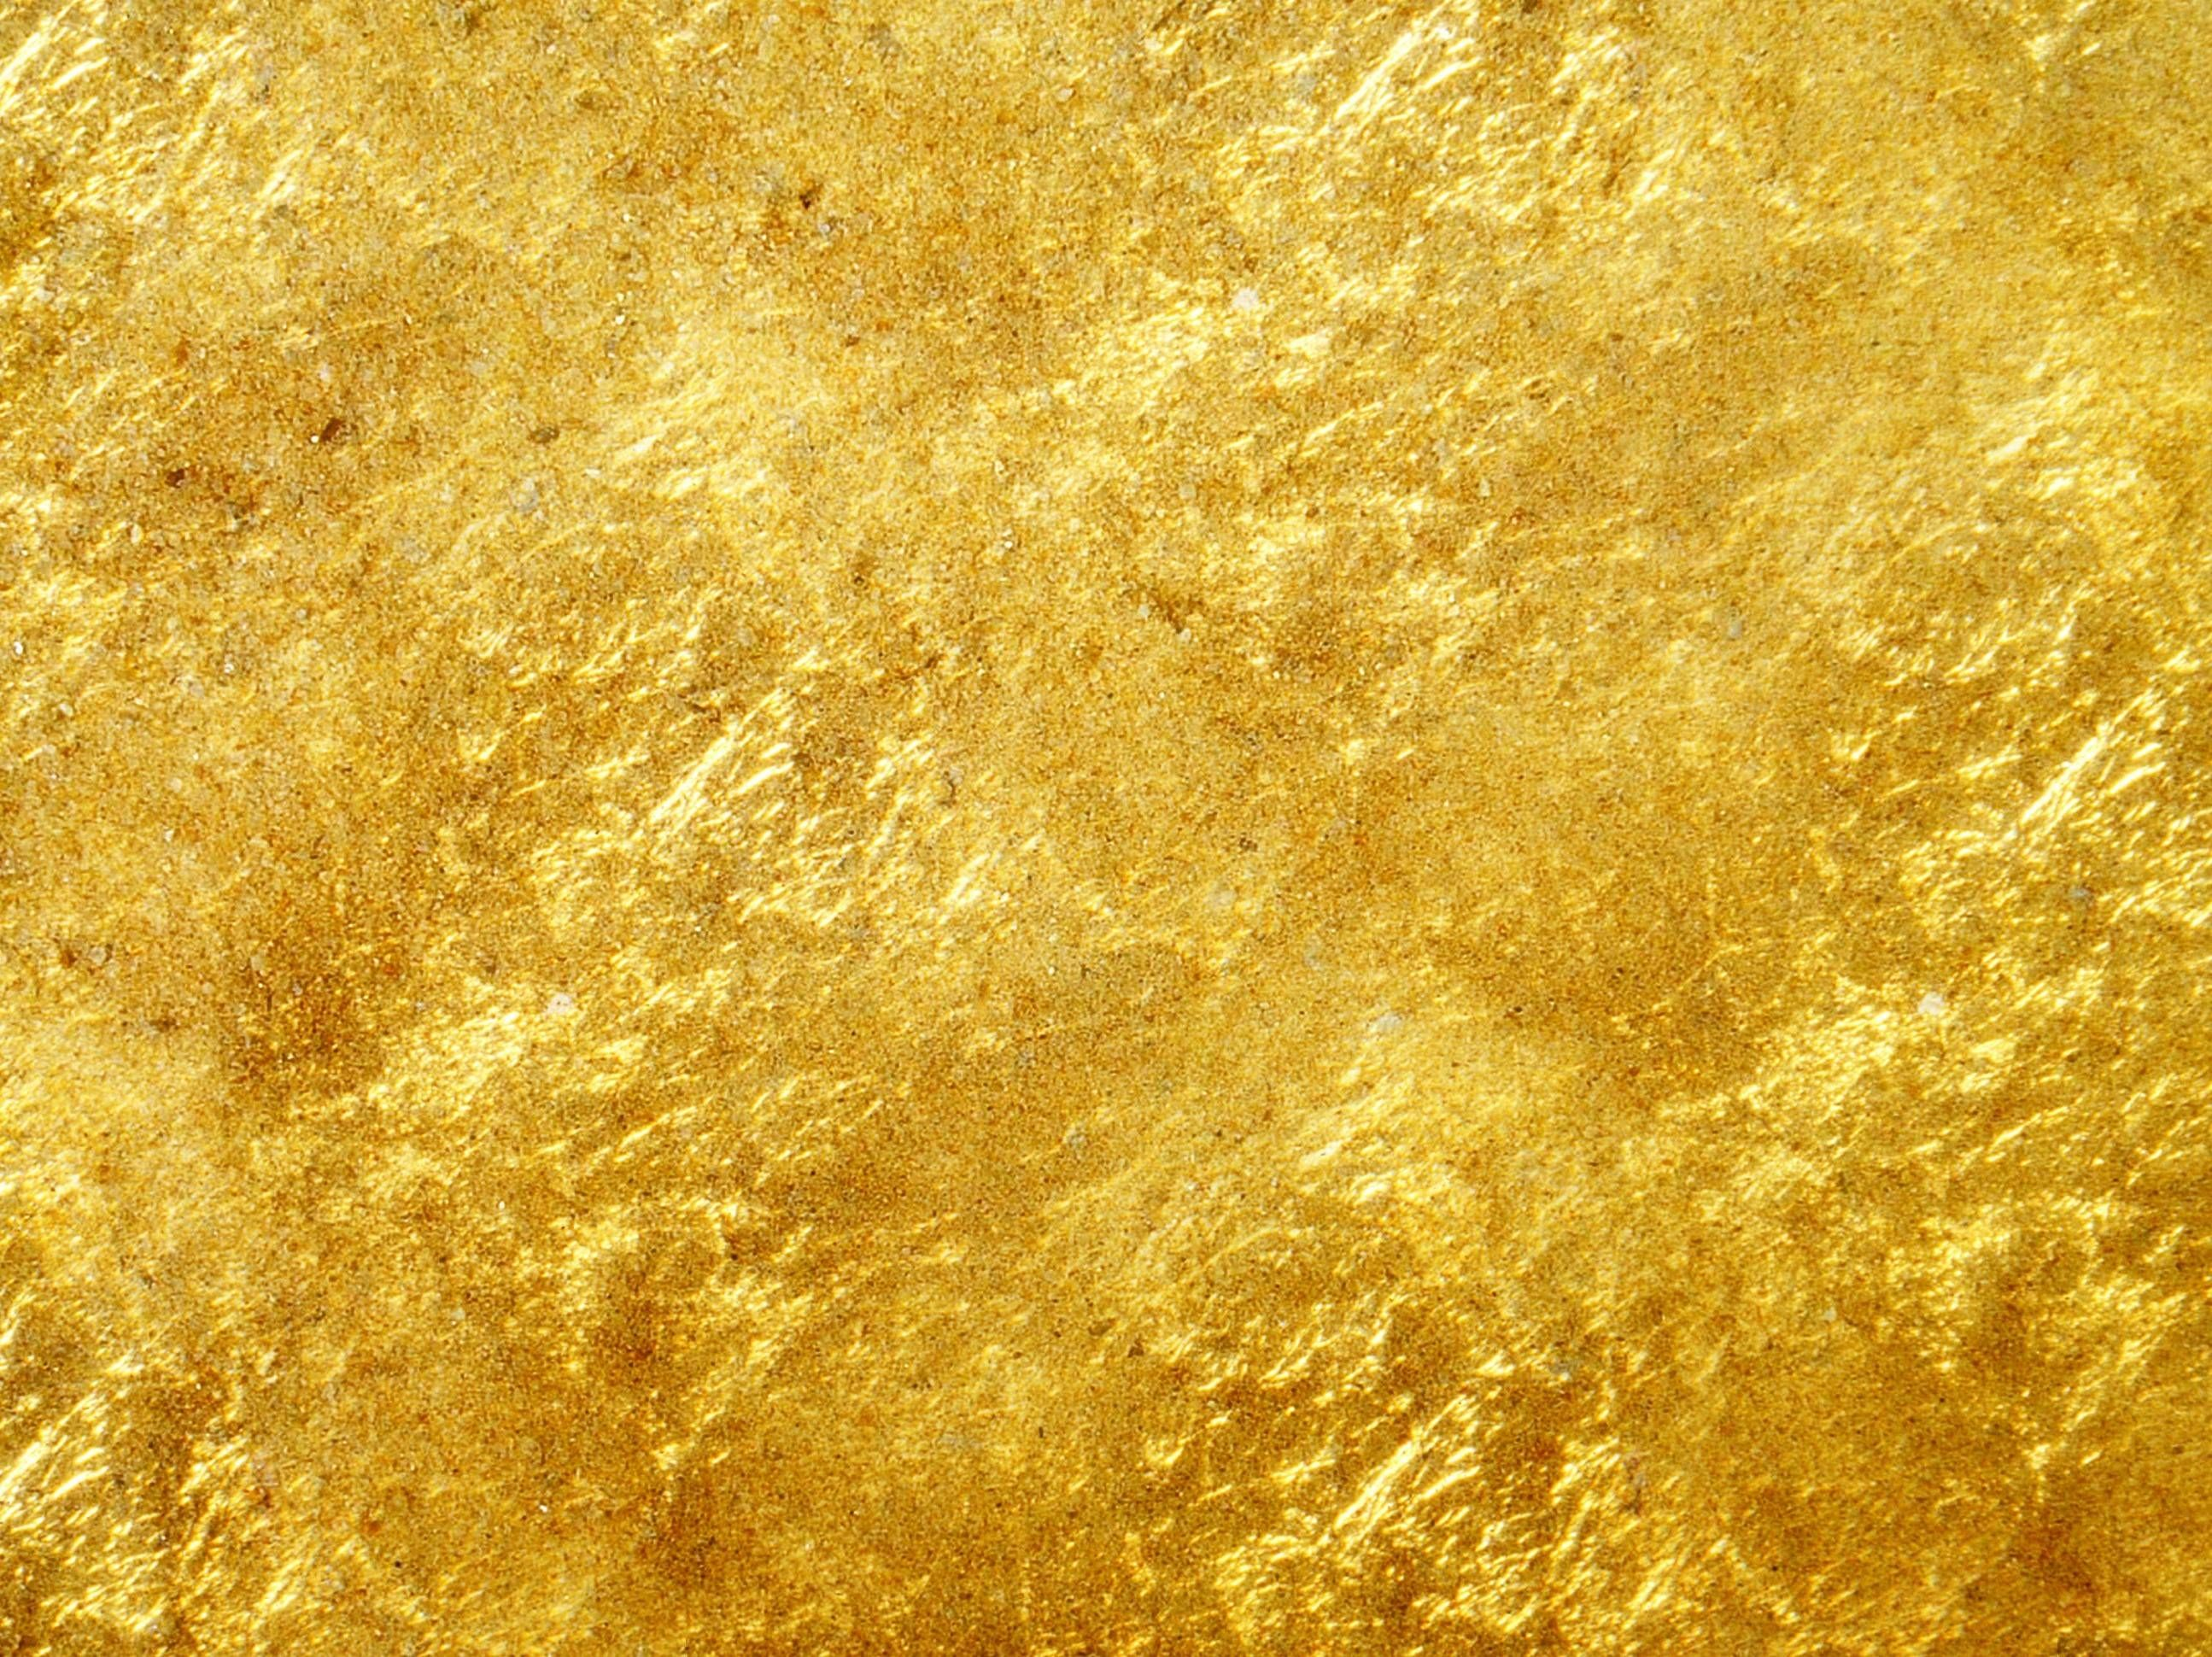 Wallpapers Textures Gold Ink Texture Myspace Backgrounds